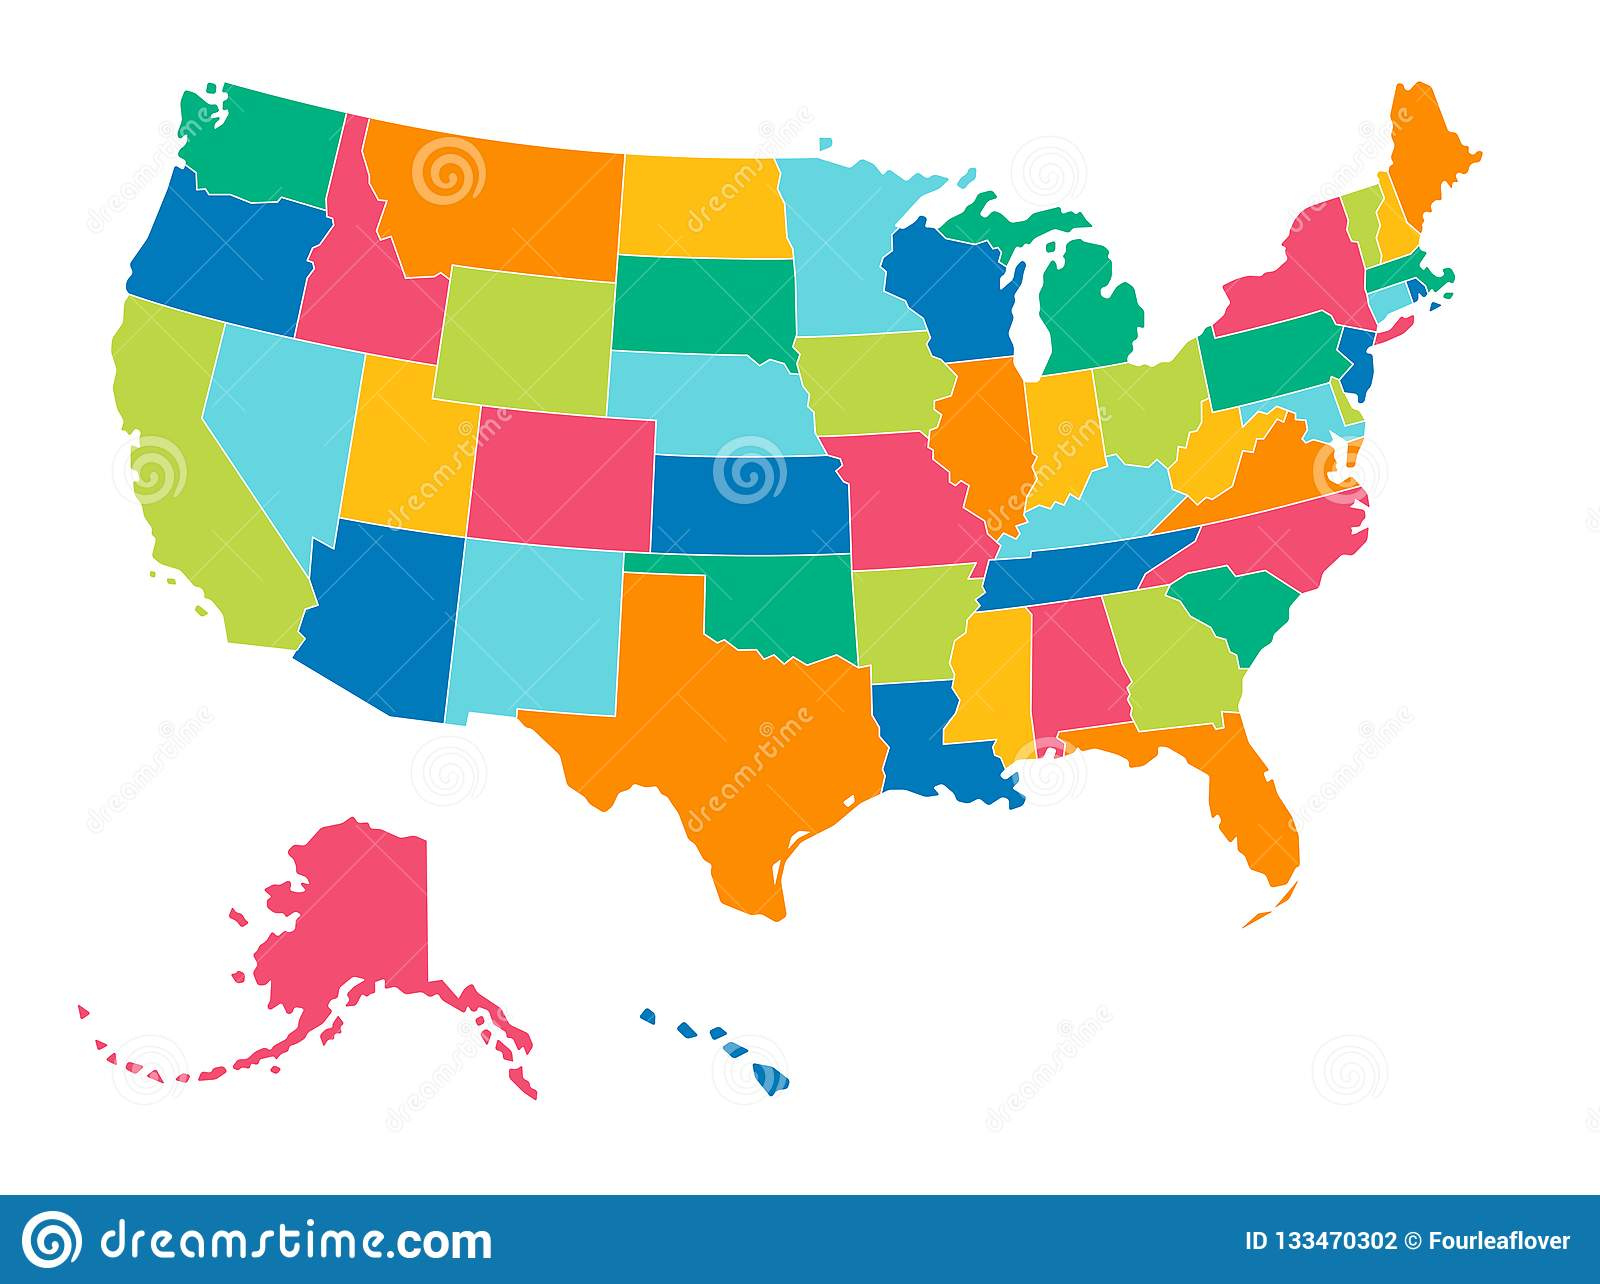 United States Simple Bright Colors Political Map Stock